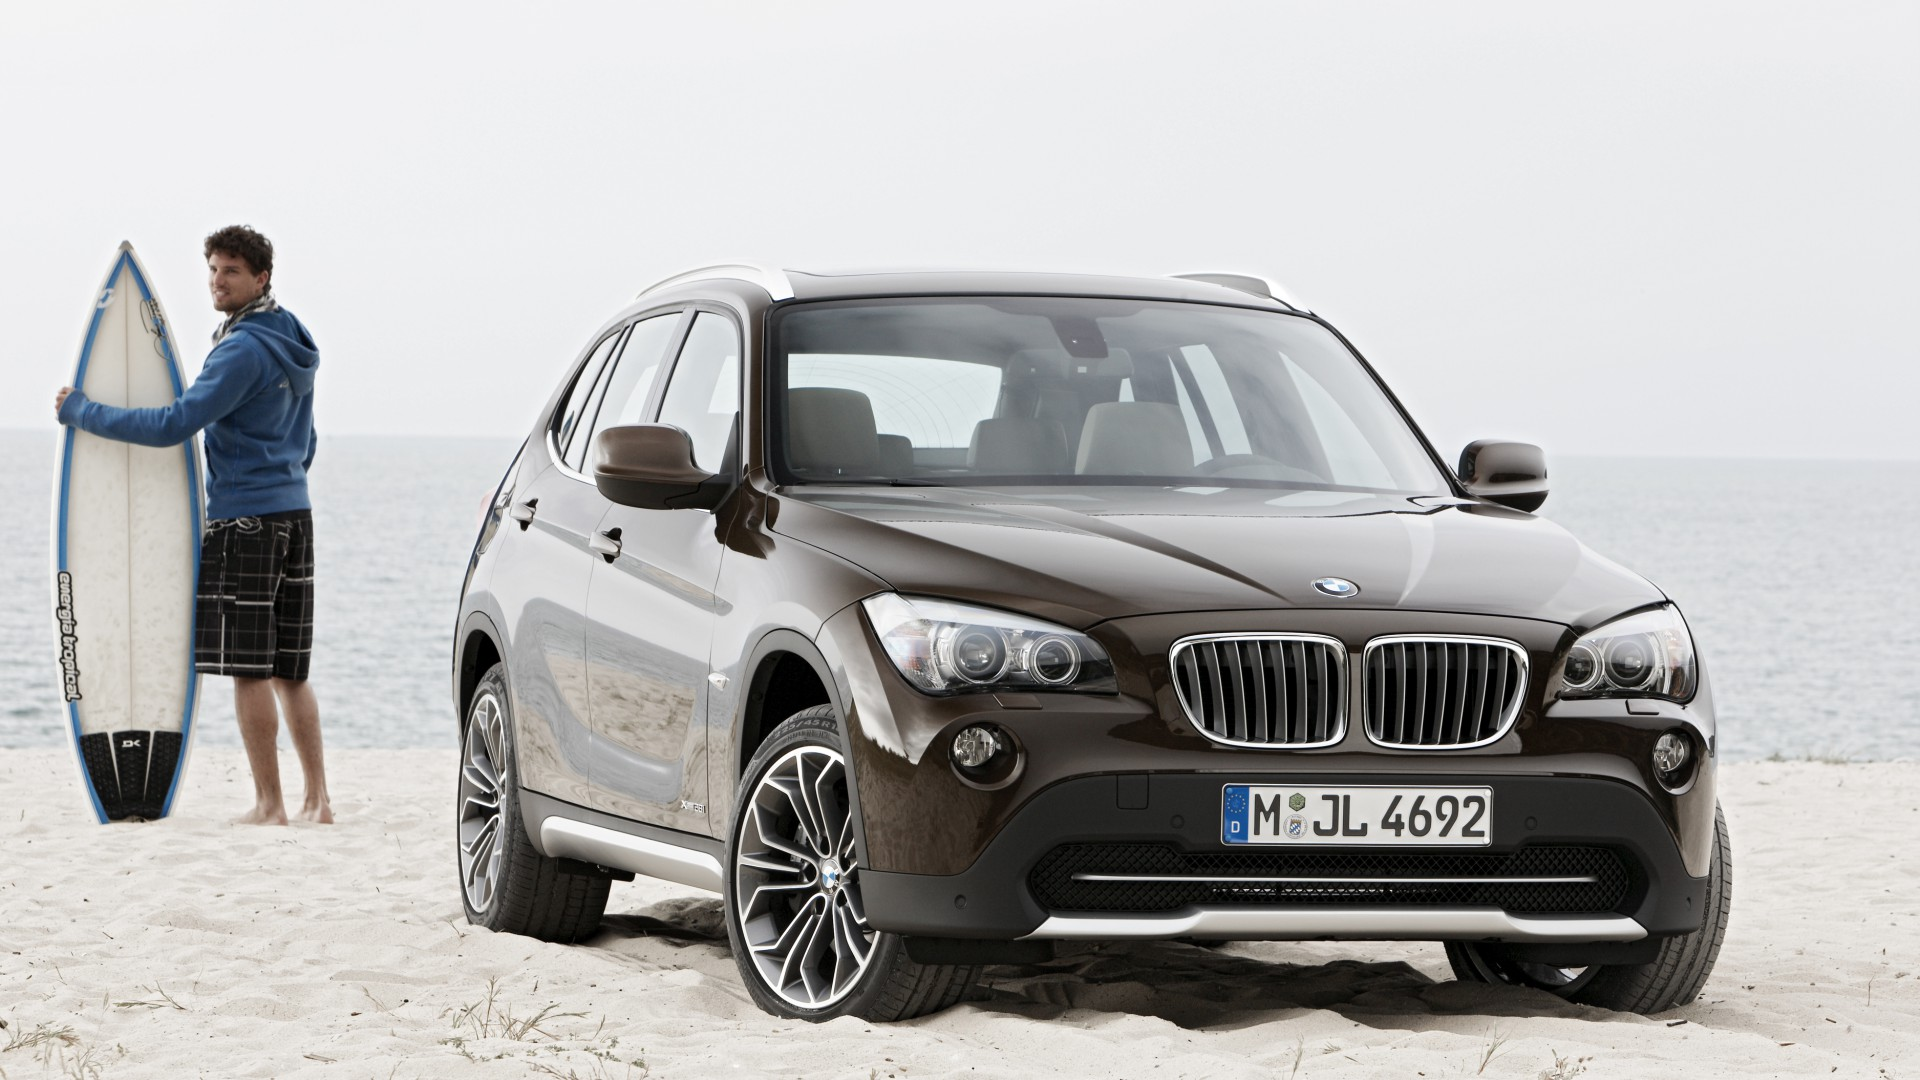 Tags: BMW X1, crossover, luxury cars, SUV, xDrive, sDrive, compact, review, test drive, rent, buyWallpaper BMW X1, crossover, luxury cars, SUV, xDrive, sDrive, compact, review, test drive, rent, buy, Cars & Bikes / Search Results - 웹